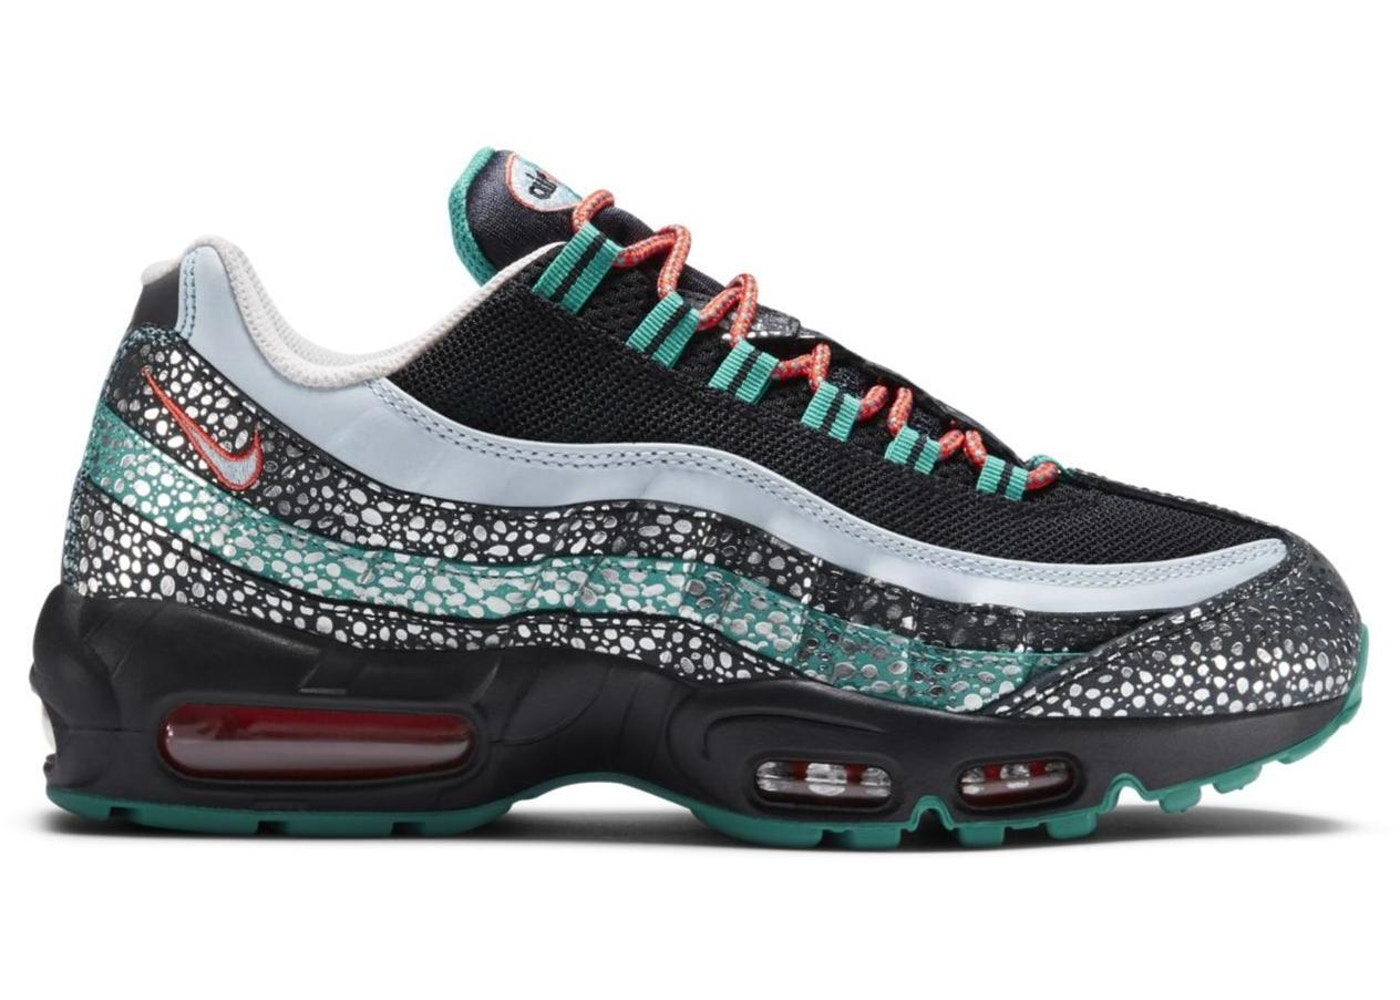 check out 3c5a6 42252 Air Max 95 Kabutomushi Safari